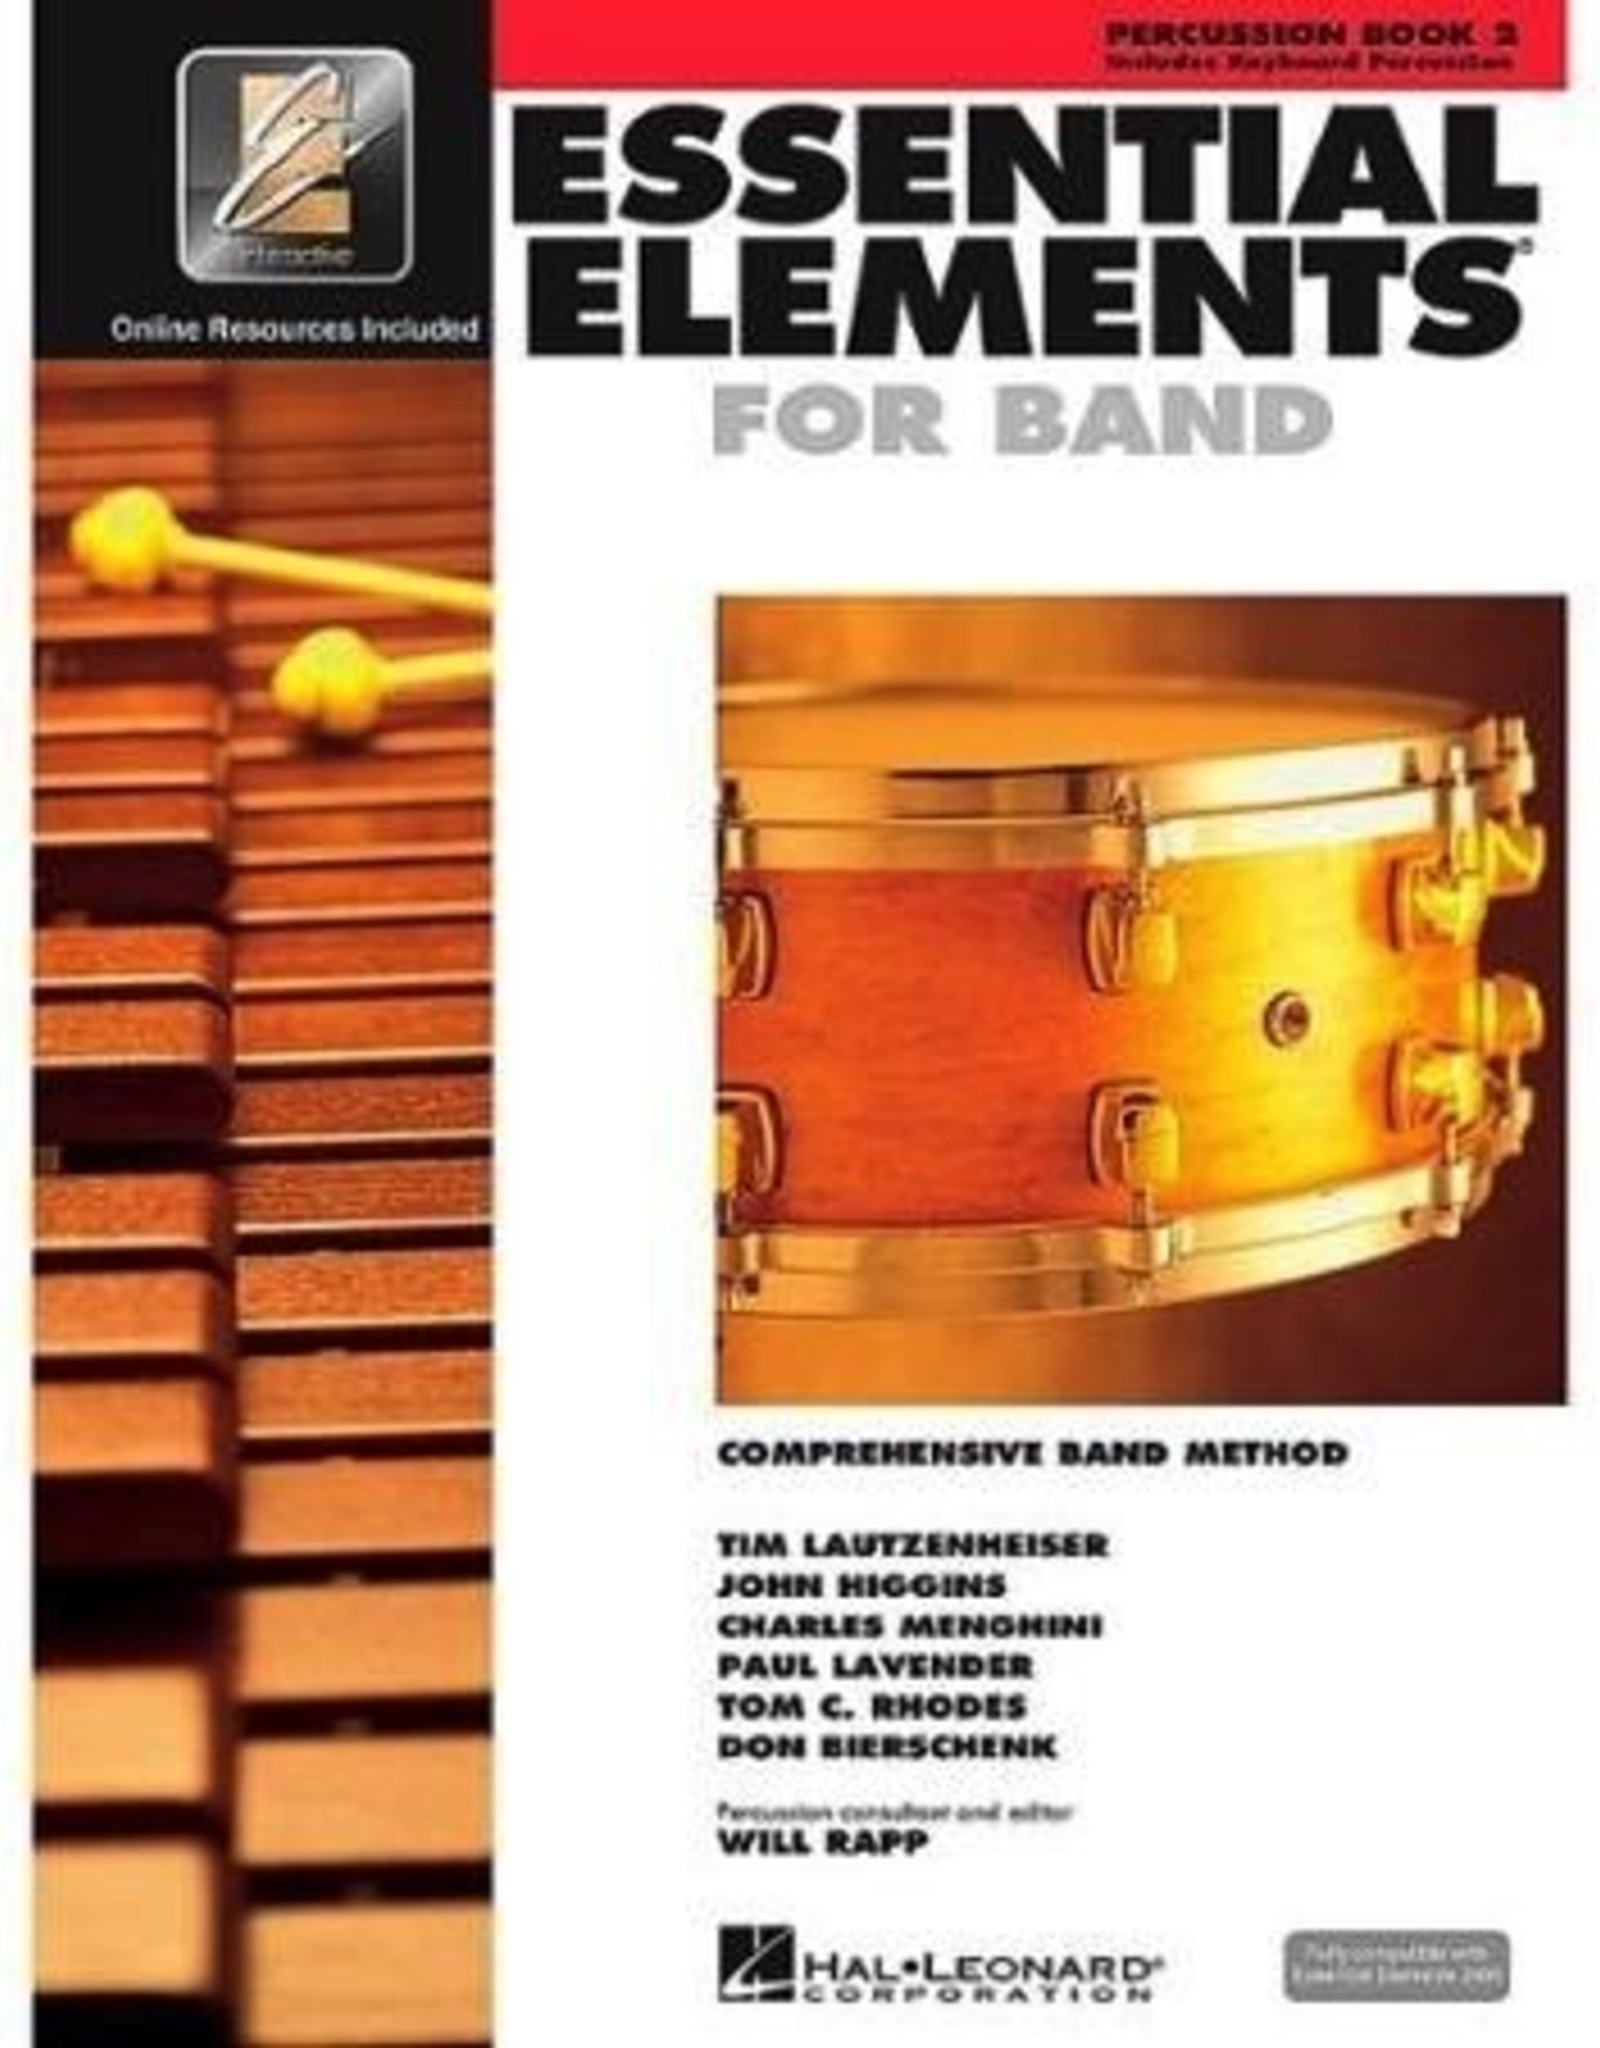 Hal Leonard Hal Leonard Essential Elements – Book 2 (Original Series)  Percussion